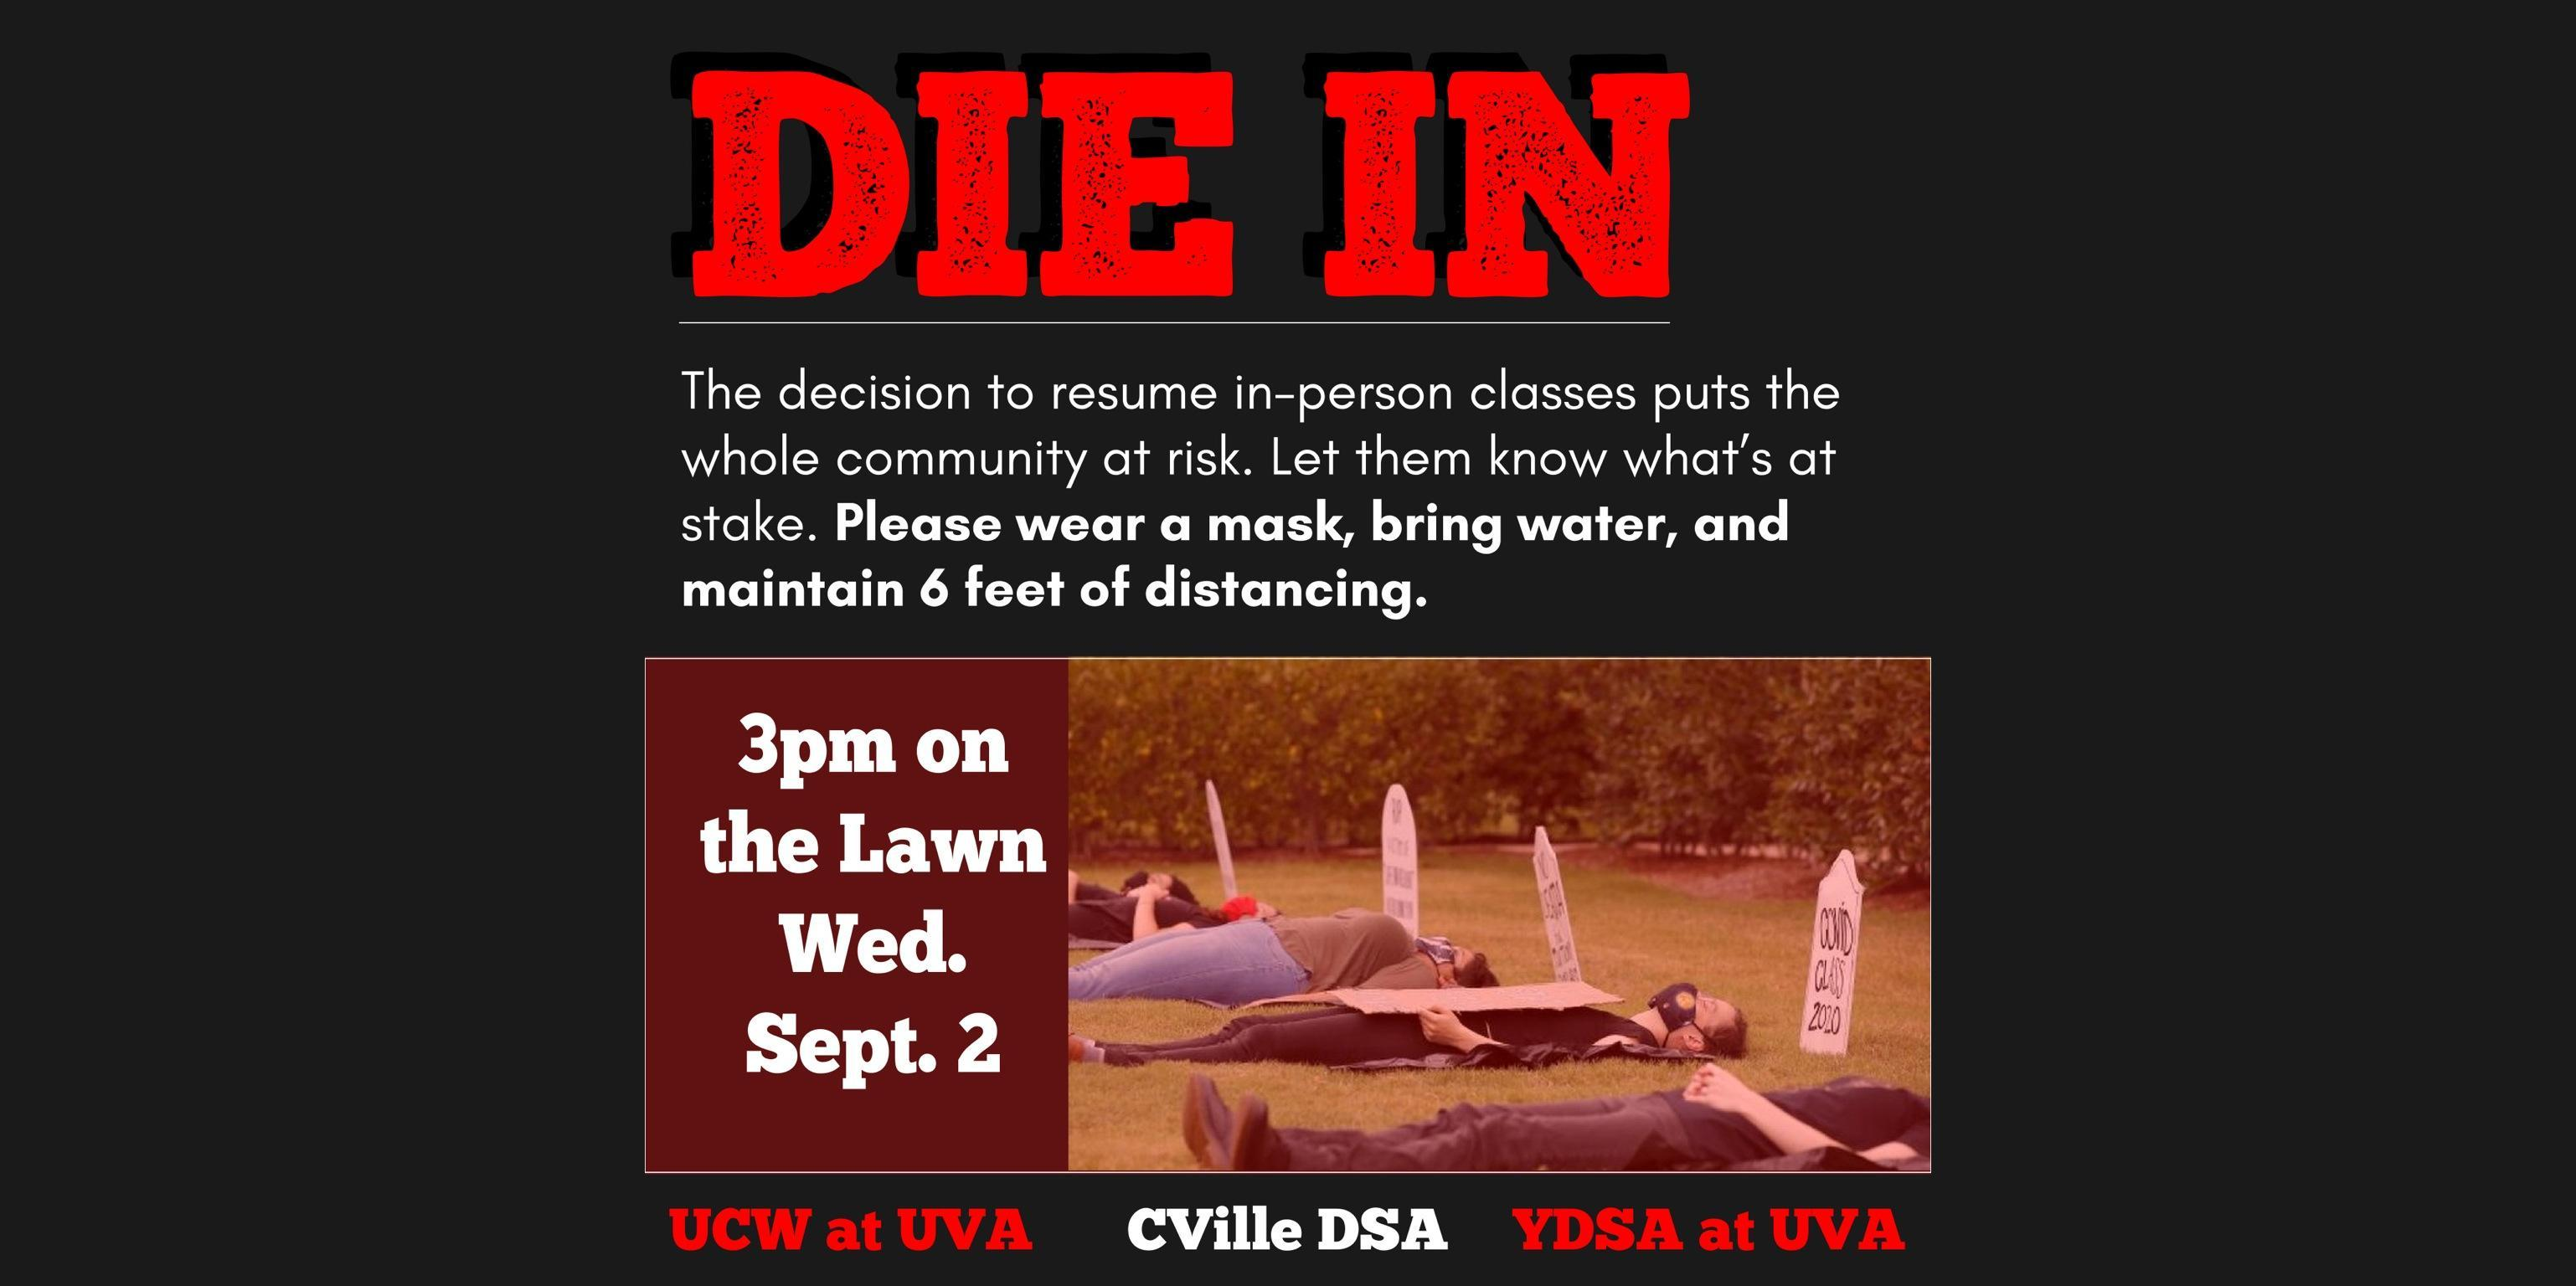 """ID: red headline """"Die In"""" above white subheading """"The Decision to resume in-person classes puts the whole community at risk... Please wear a mask, bring water, and maintain 6 feet of distancing. 3pm on the Lawn Wed. Sept 2 UCW at UVA Cville DSA YDSA atUVA"""